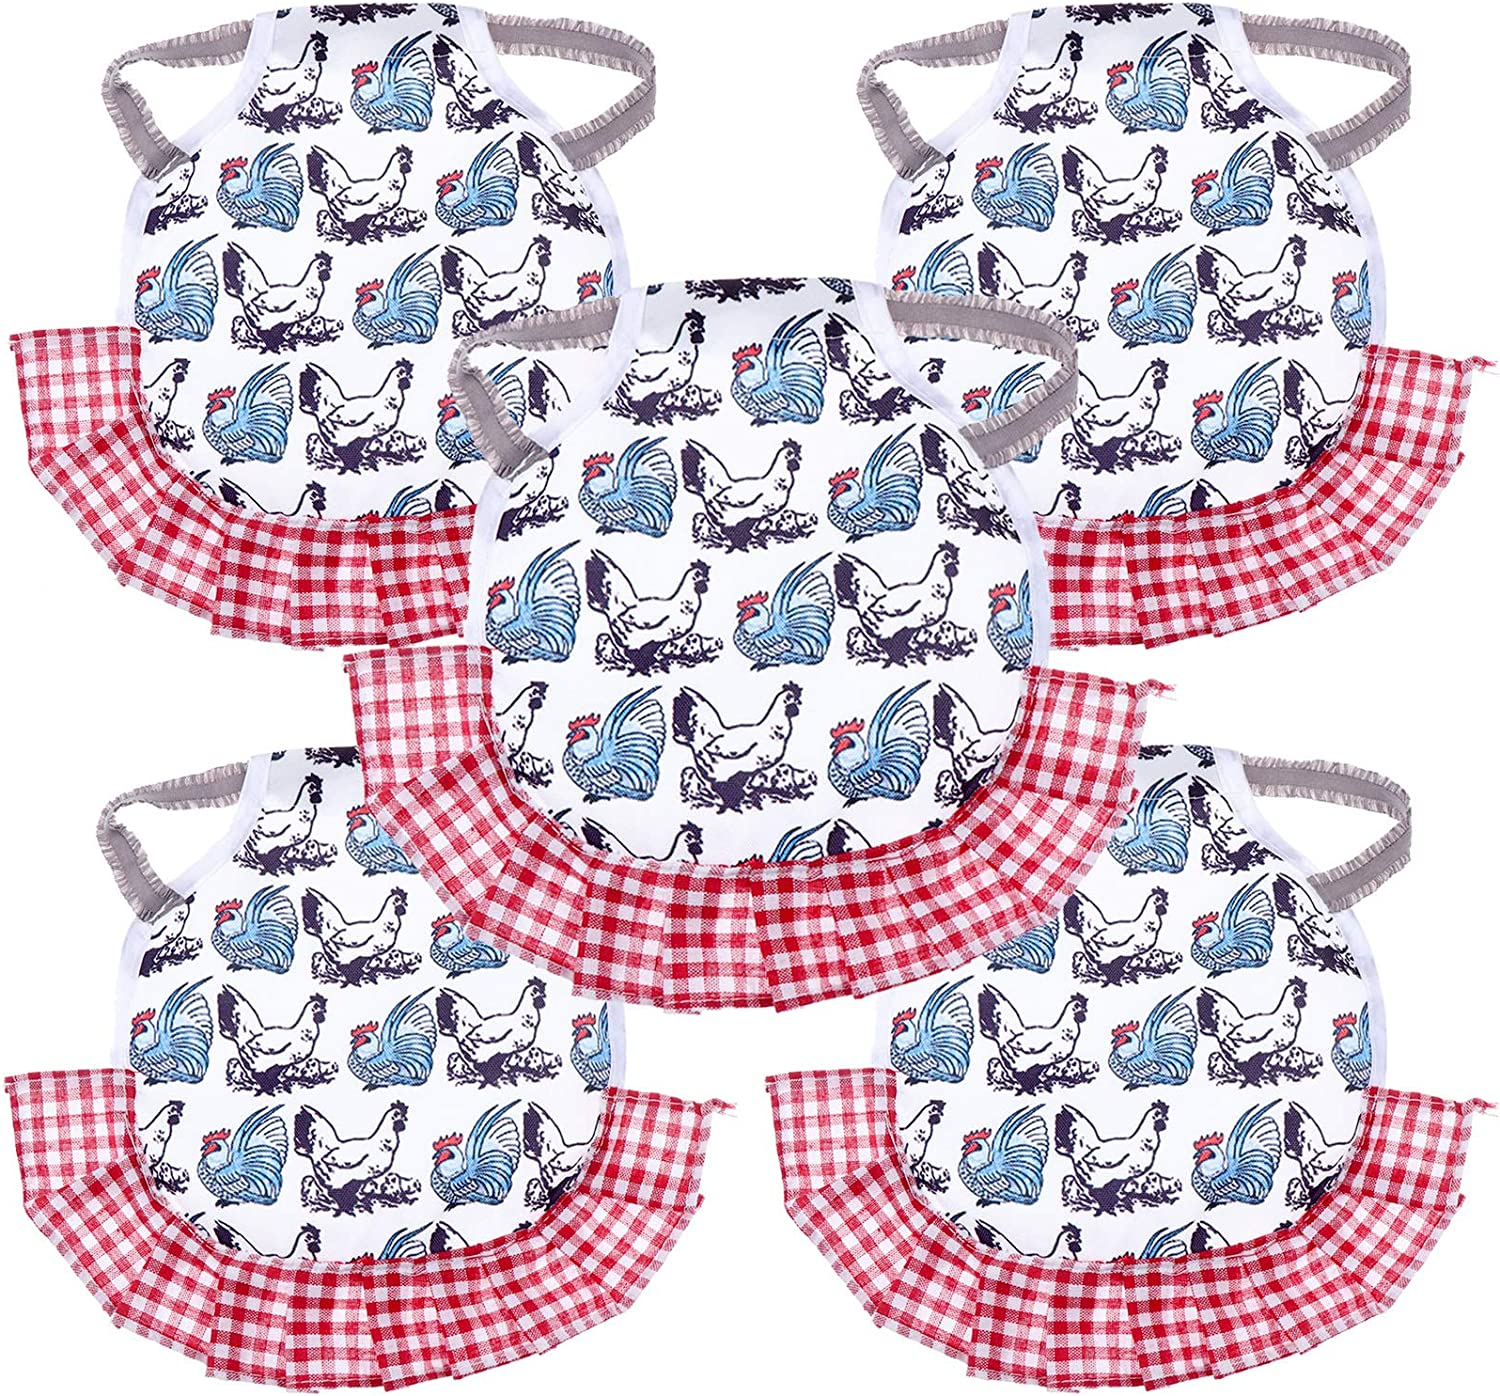 5 Pack Chicken Saddle Hen Apron Feather Fixer Wing Back Protector Hen Apron with Elastic Straps for Small, Medium and Large Hens (Hen)